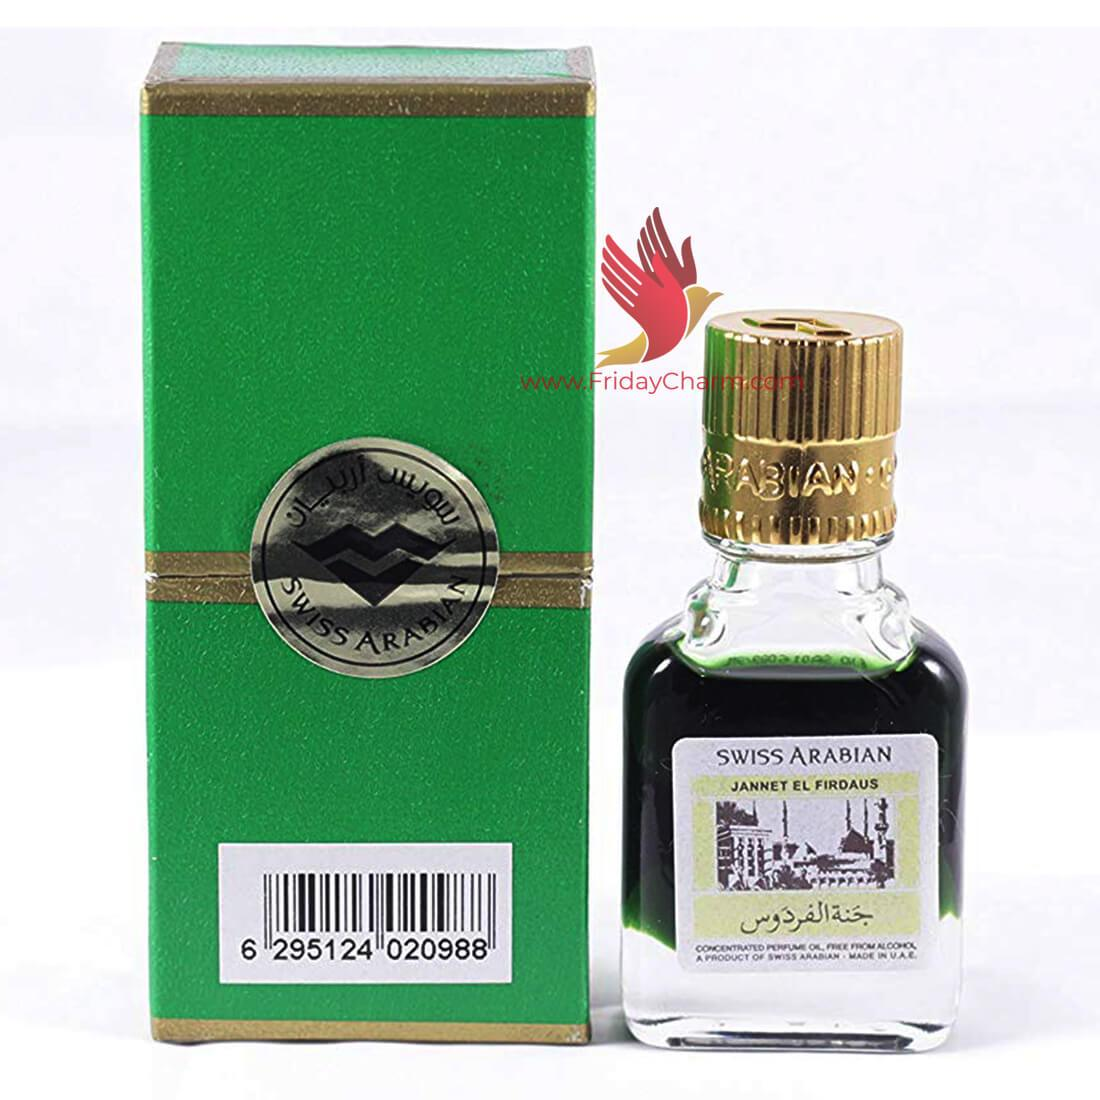 Swiss Arabian Jannat ul Firdaus Attar - 9 ml Green